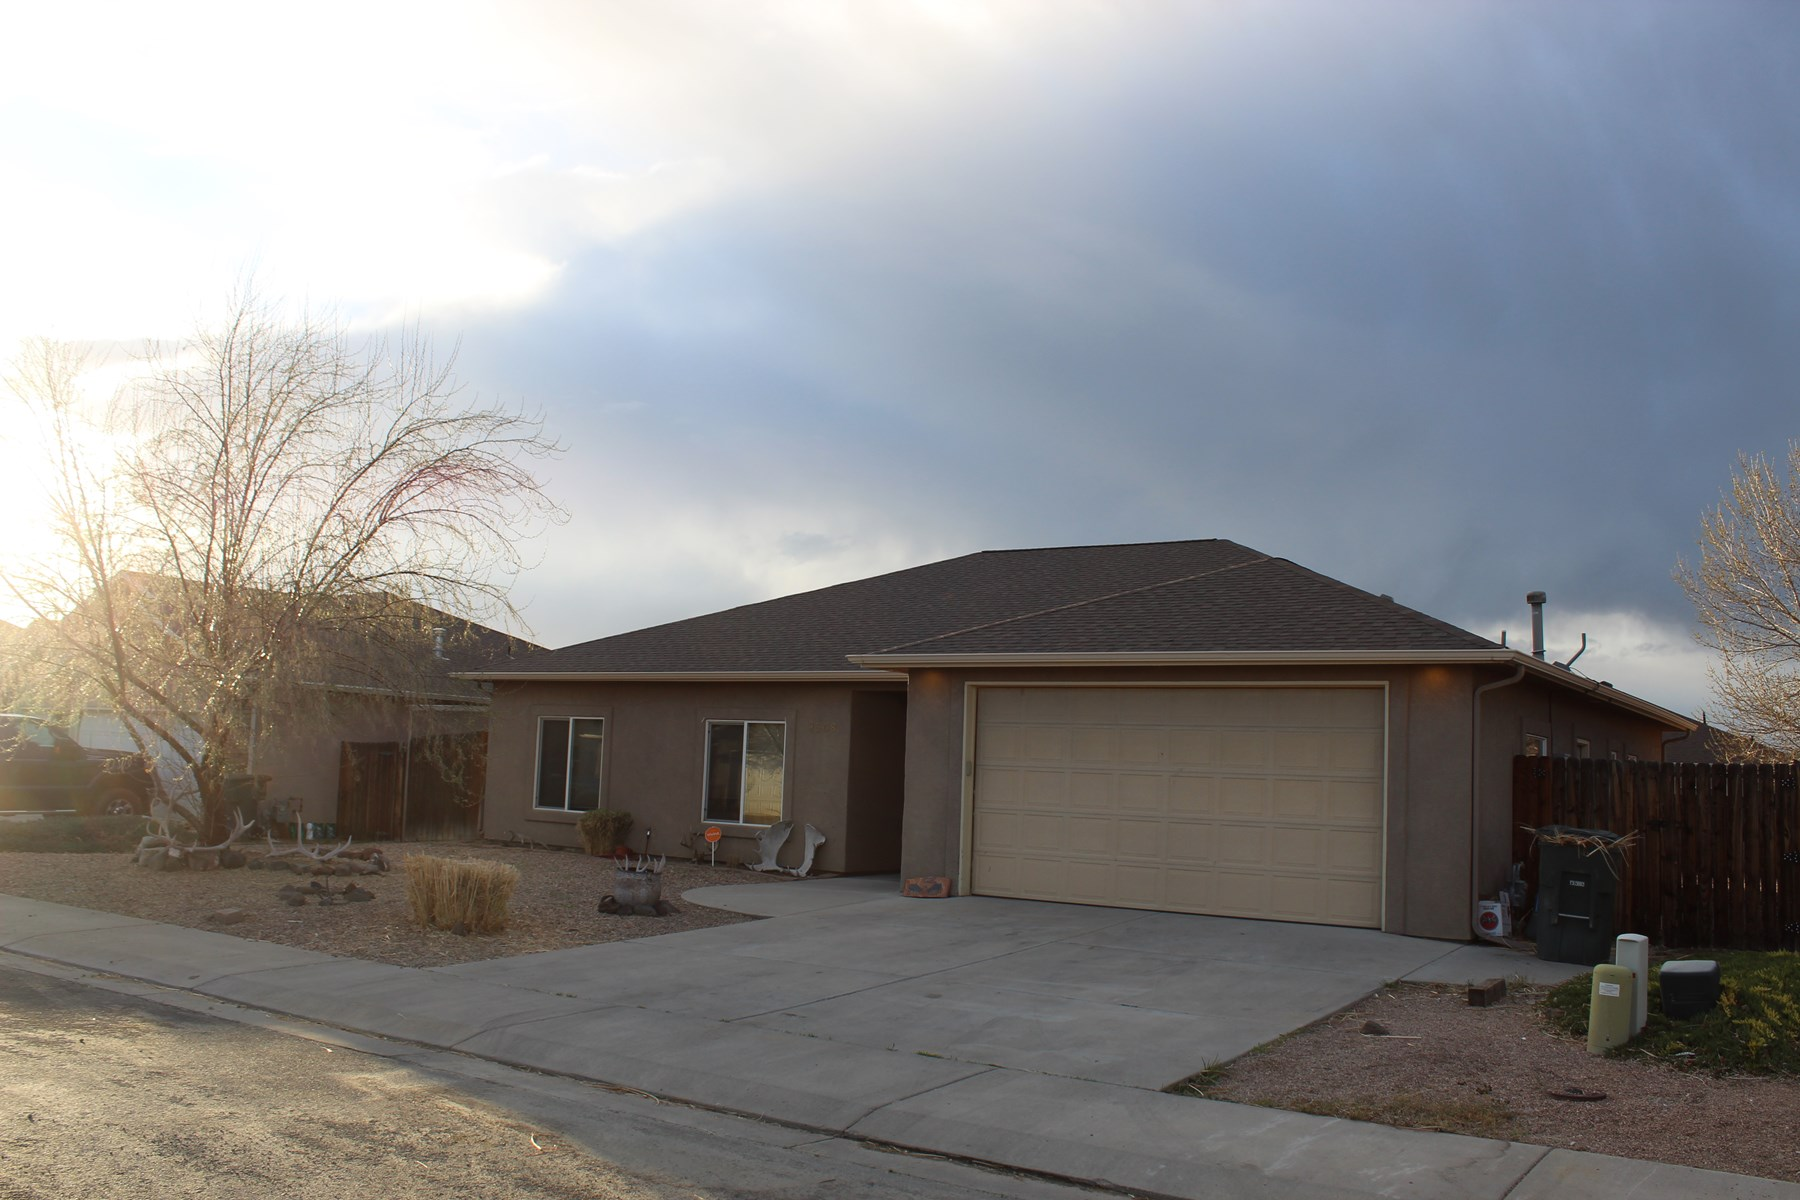 Home for Sale in Grand Junction